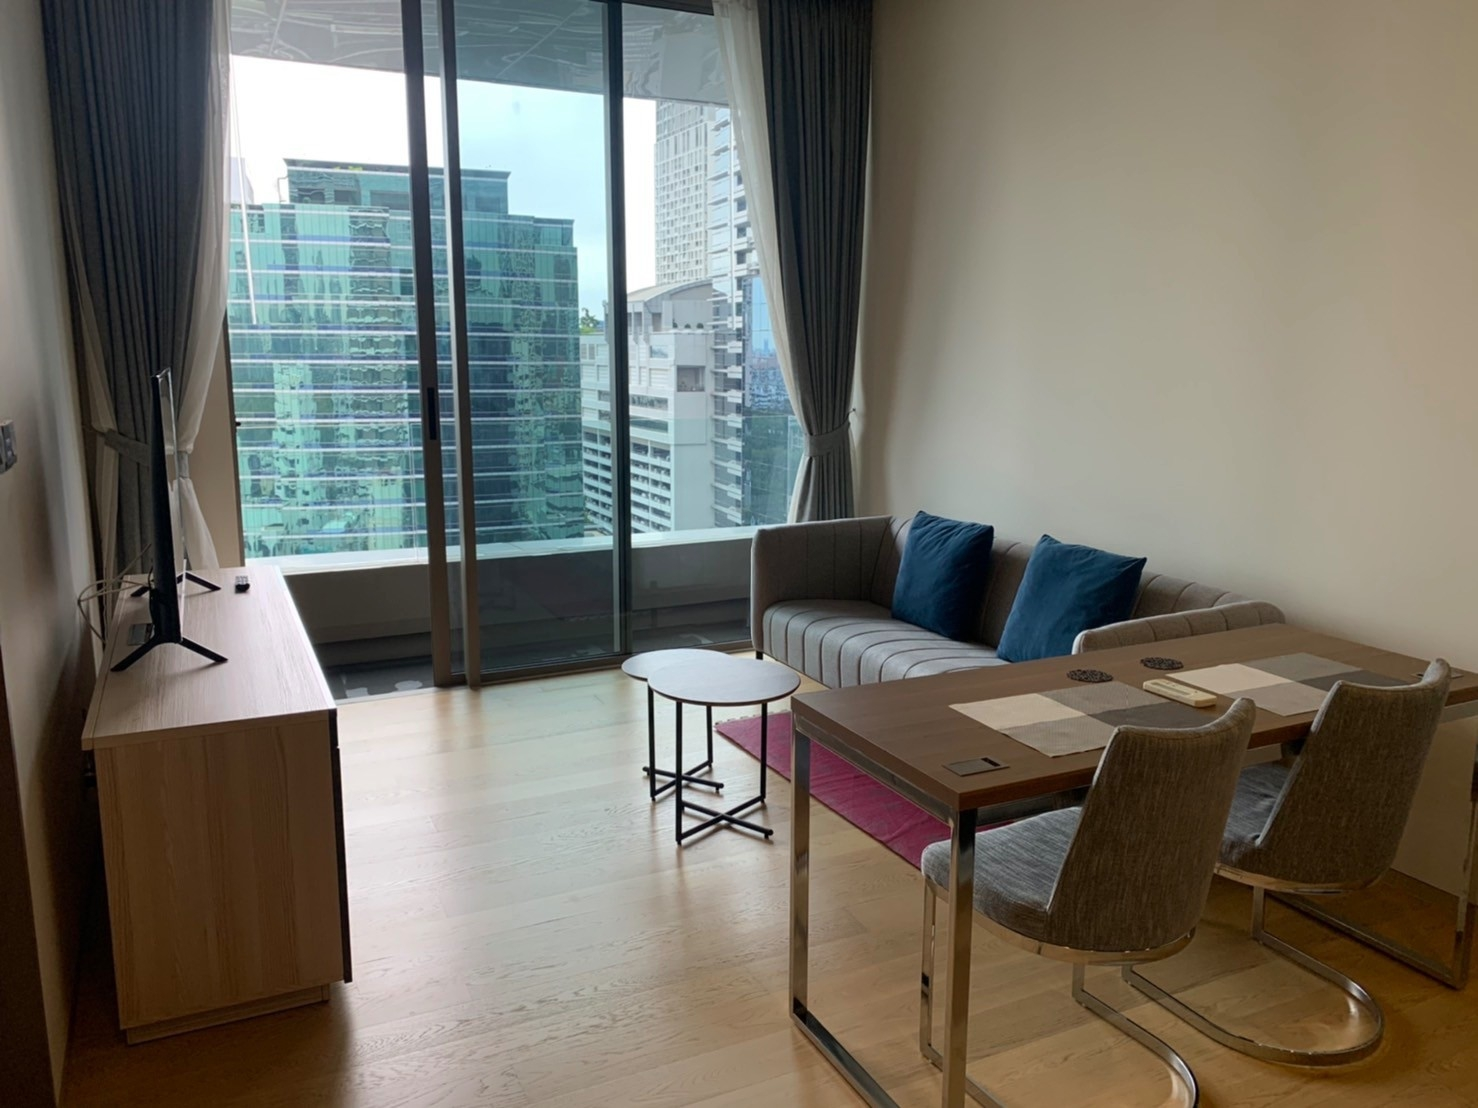 LTH3077 – Saladaeng One FOR RENT 1 bed 1 bath size 50 Sq.M. Nearby MRT Lumphini station ONLY 35k/Month